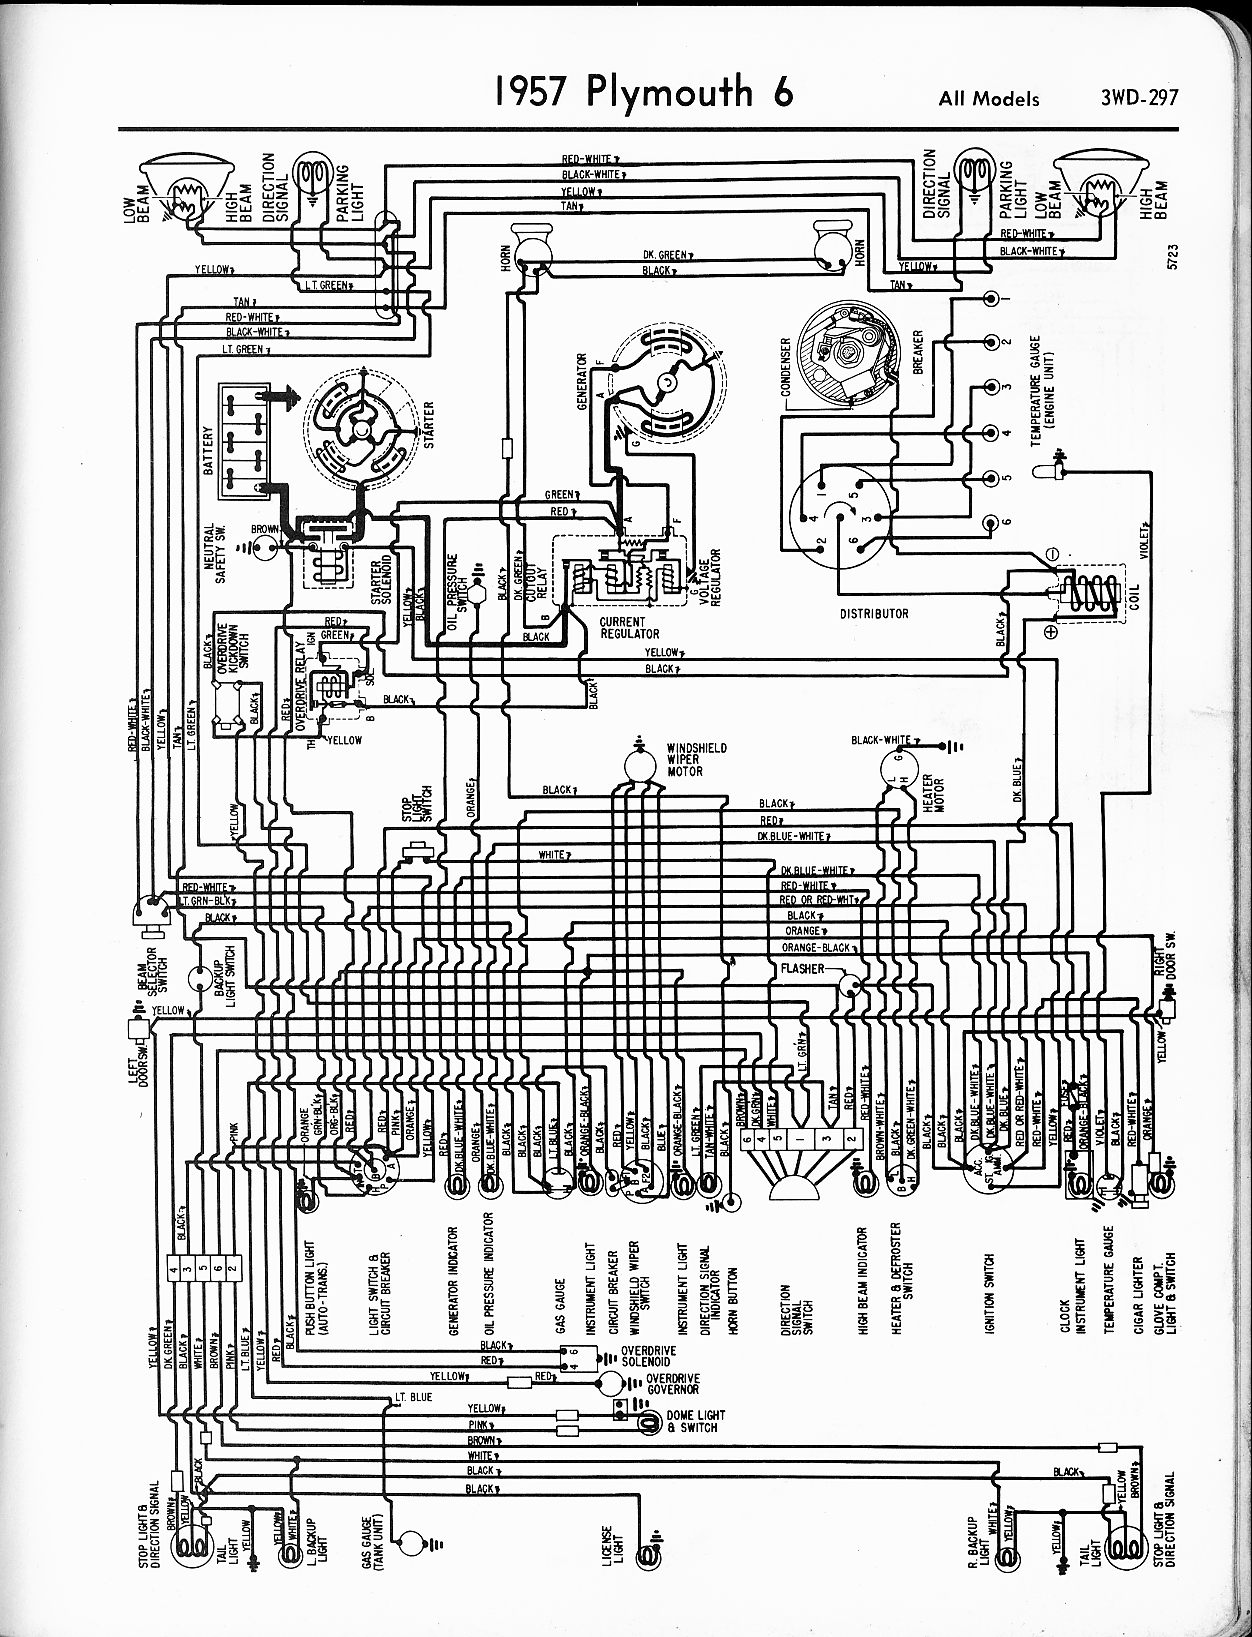 f100 65 ford econoline wiring diagram wiring library 67 pontiac gto wiring-diagram 1967 barracuda wiring diagrams detailed schematics diagram rh mrskindsclass com 1969 barracuda 1969 barracuda